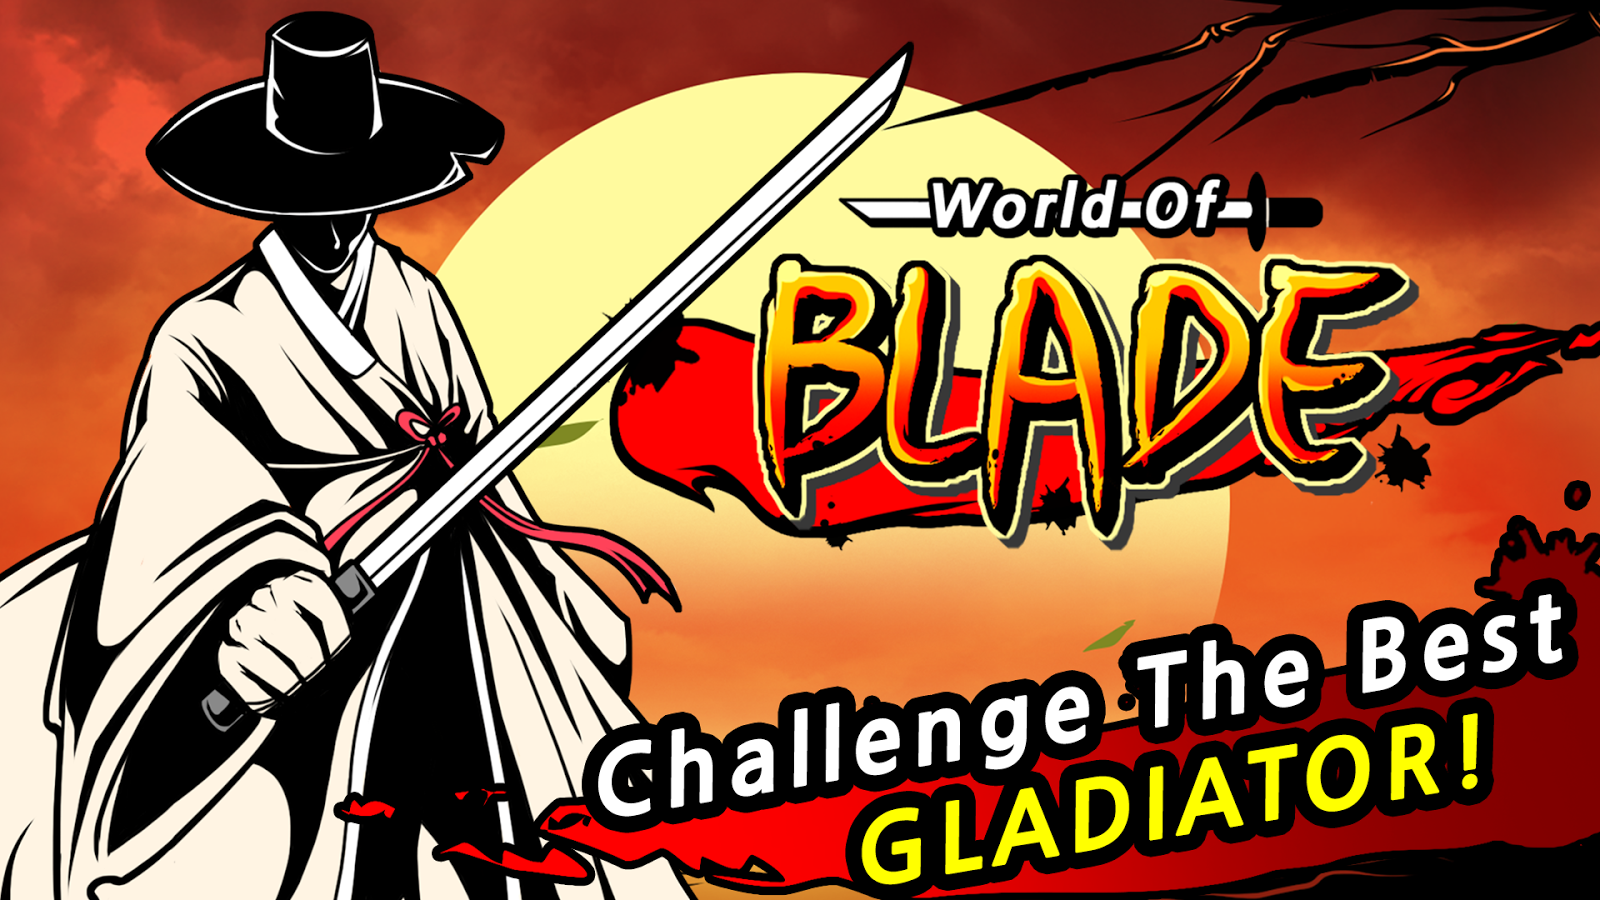 World Of Blade : blade master- screenshot